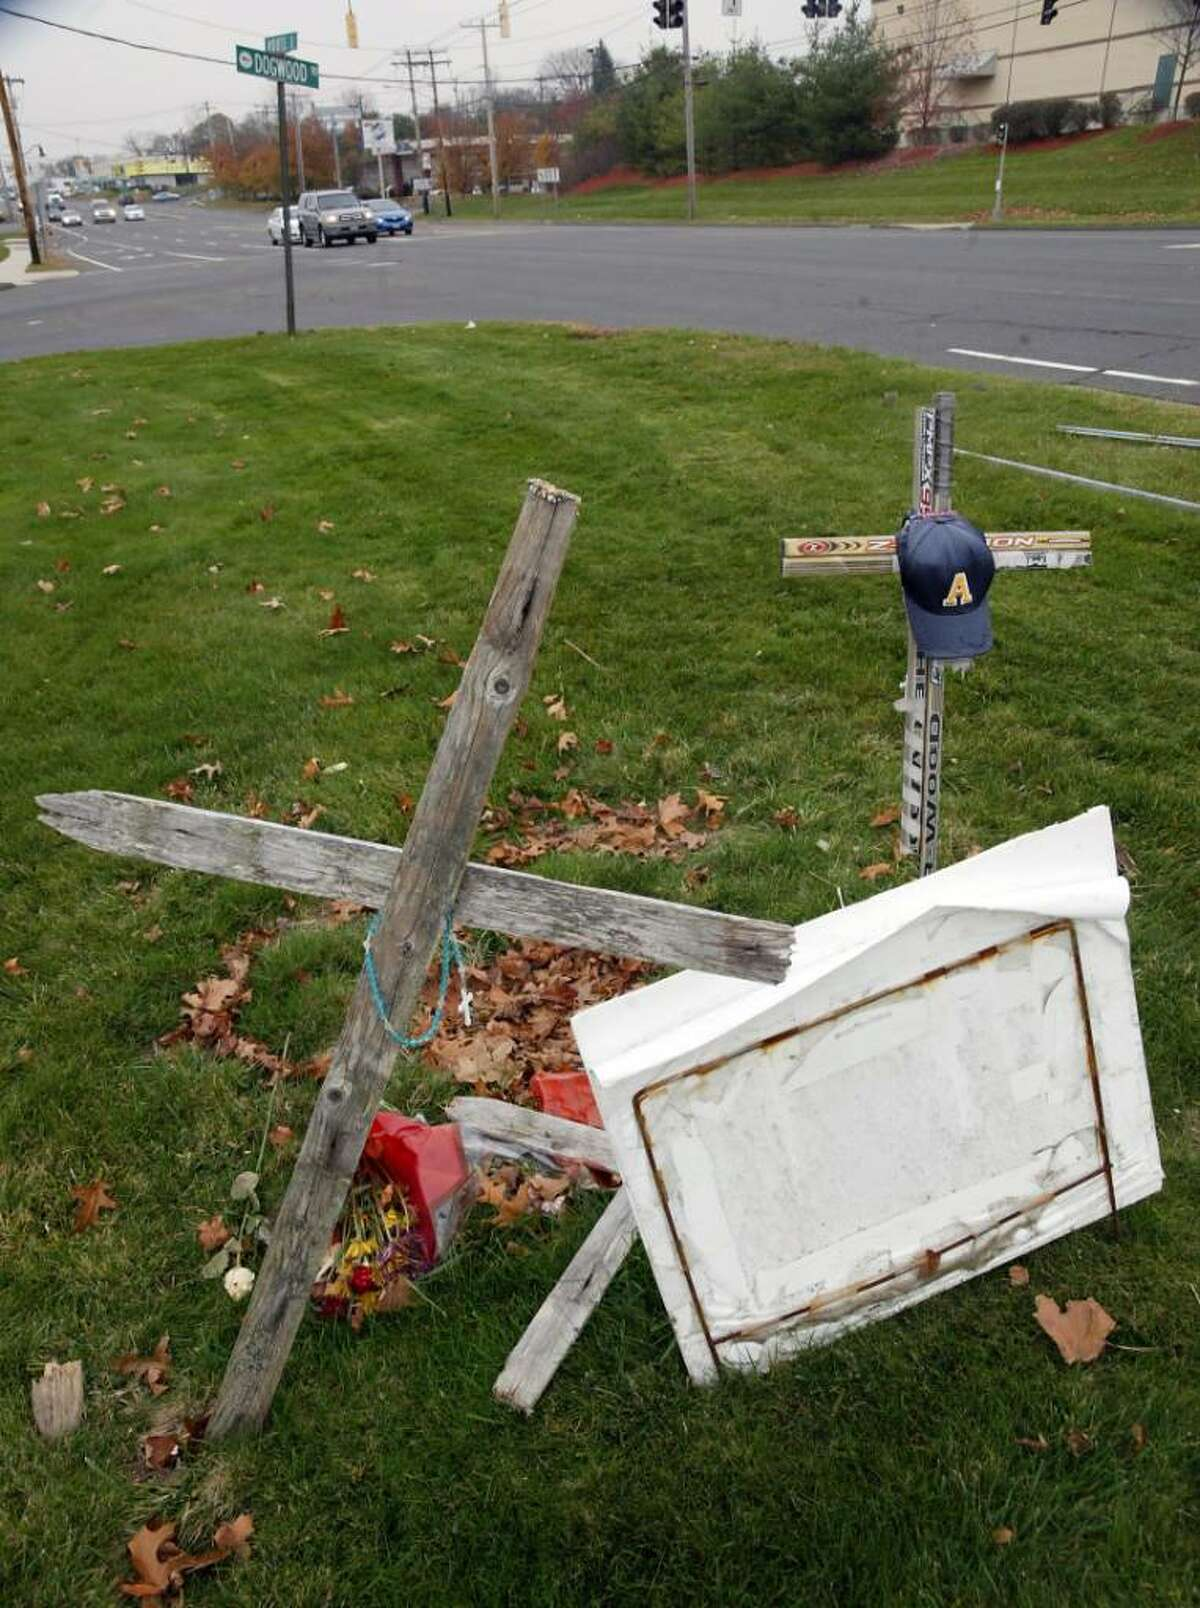 A memorial still stands near the intersection of the Post Road at Dogwood Road in Orange where teenagers Dave Servin and Ashlie Krakowski were killed in the early morning hours of June 13, 2009 when their Mazda was broadsided by Milford officer Jason Anderson's police cruiser.